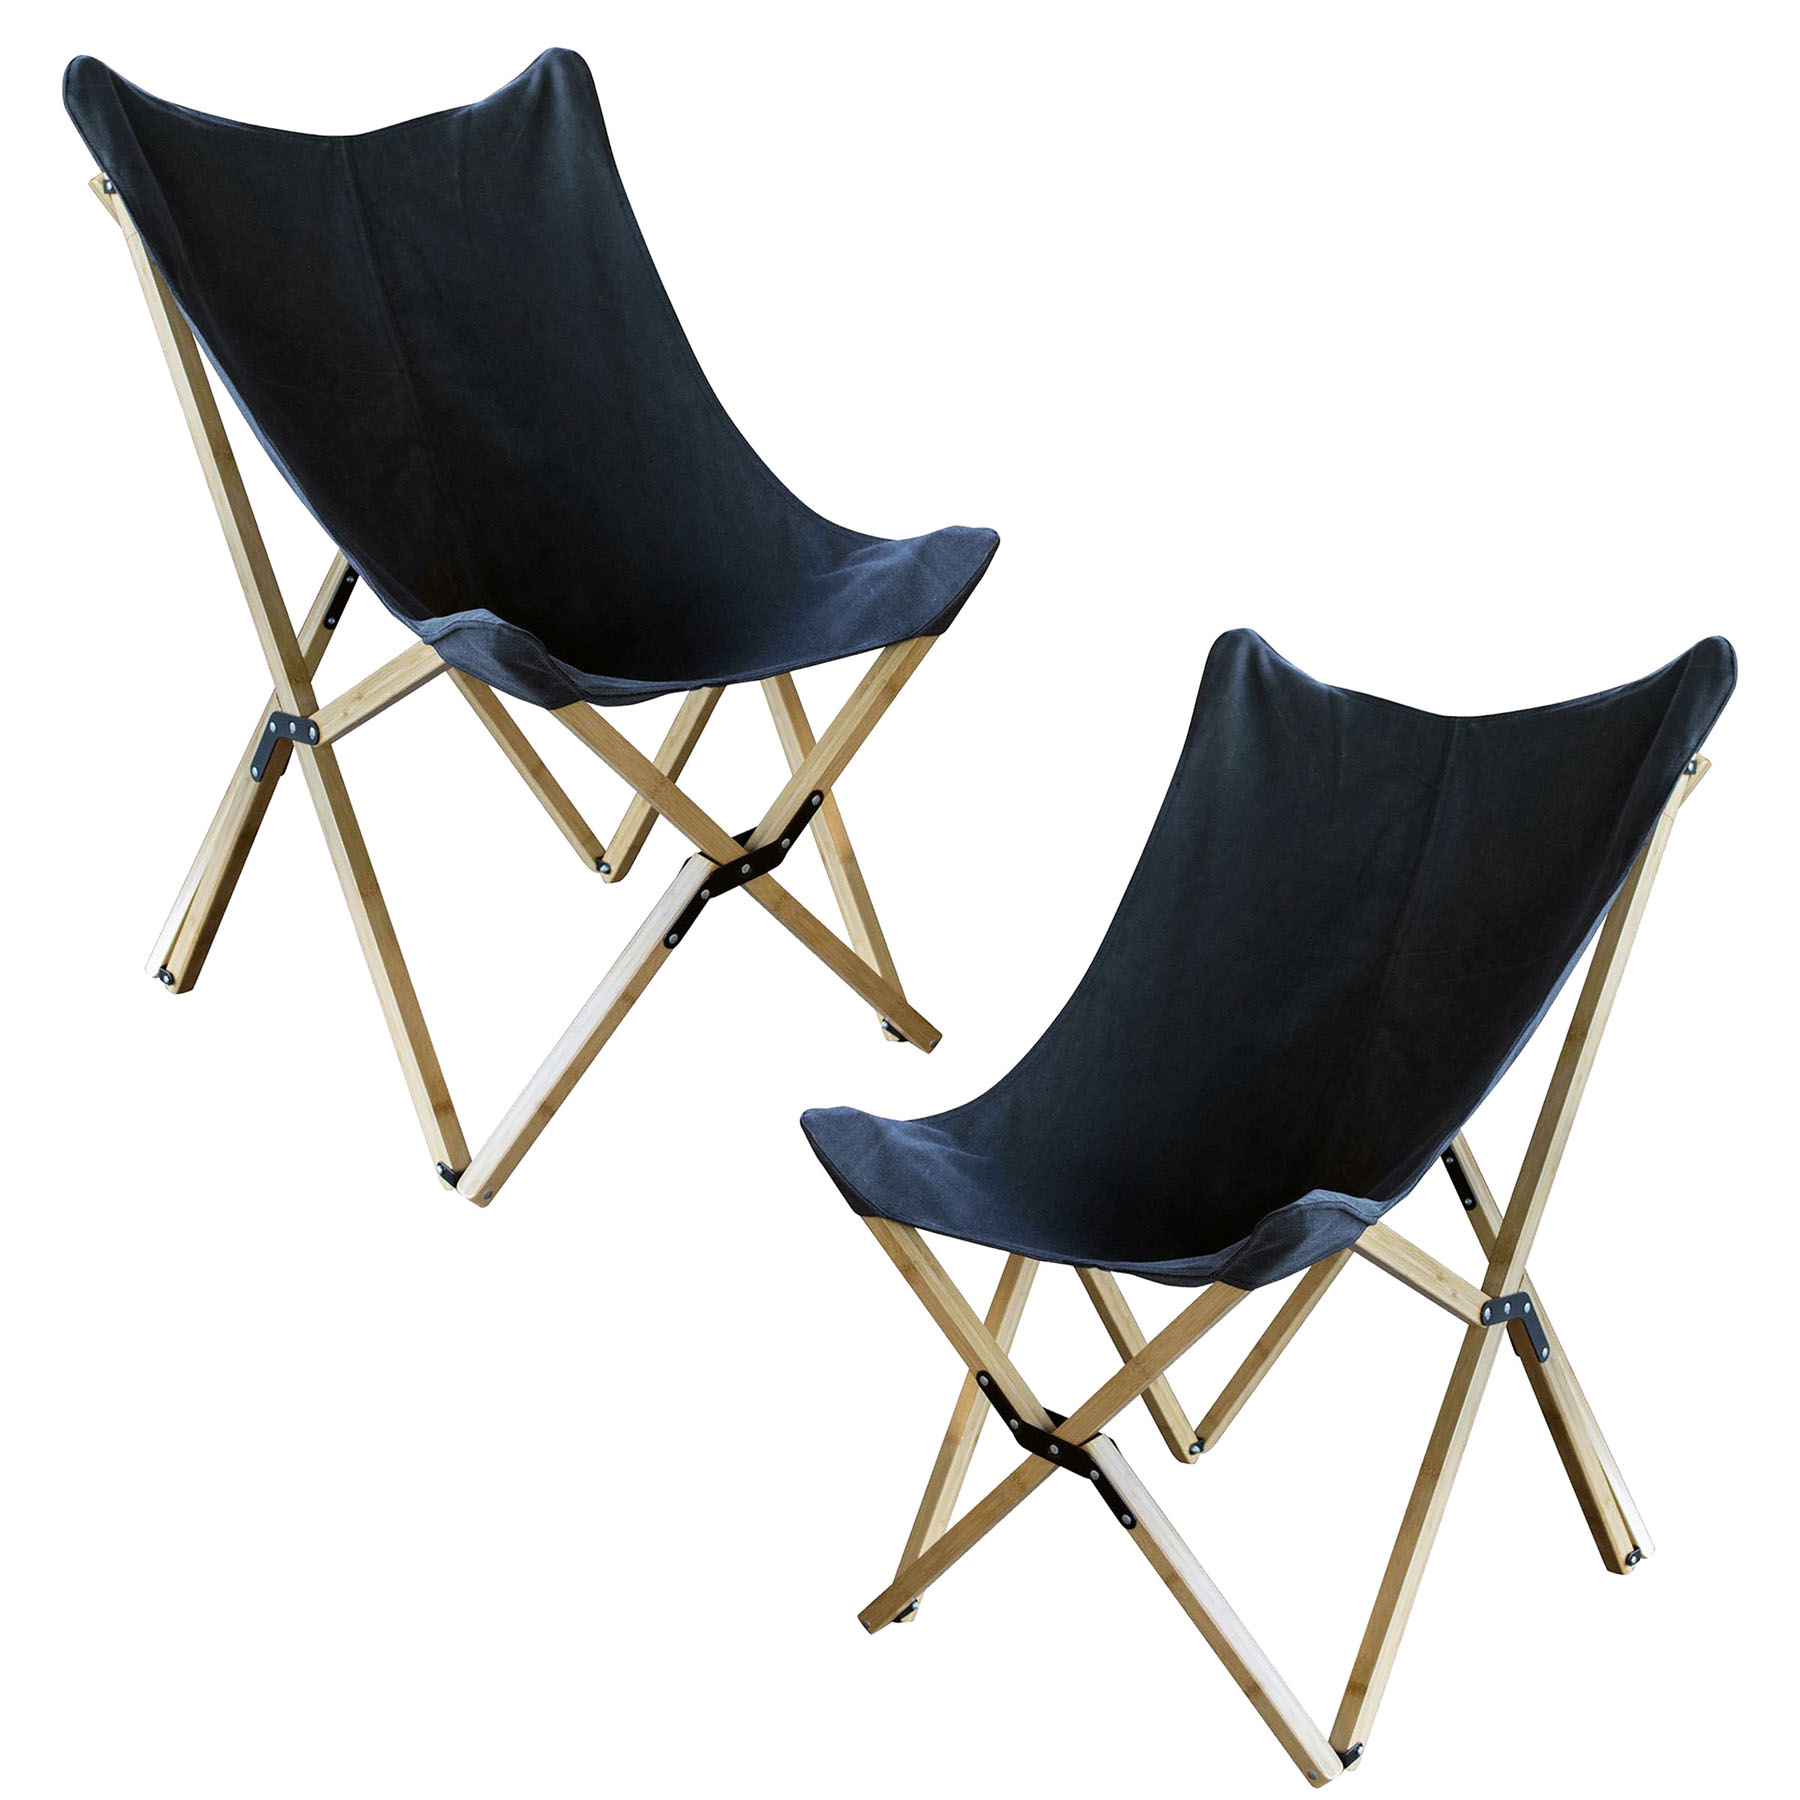 Canvas and Bamboo Butterfly Chair - Black - 2 Piece Set